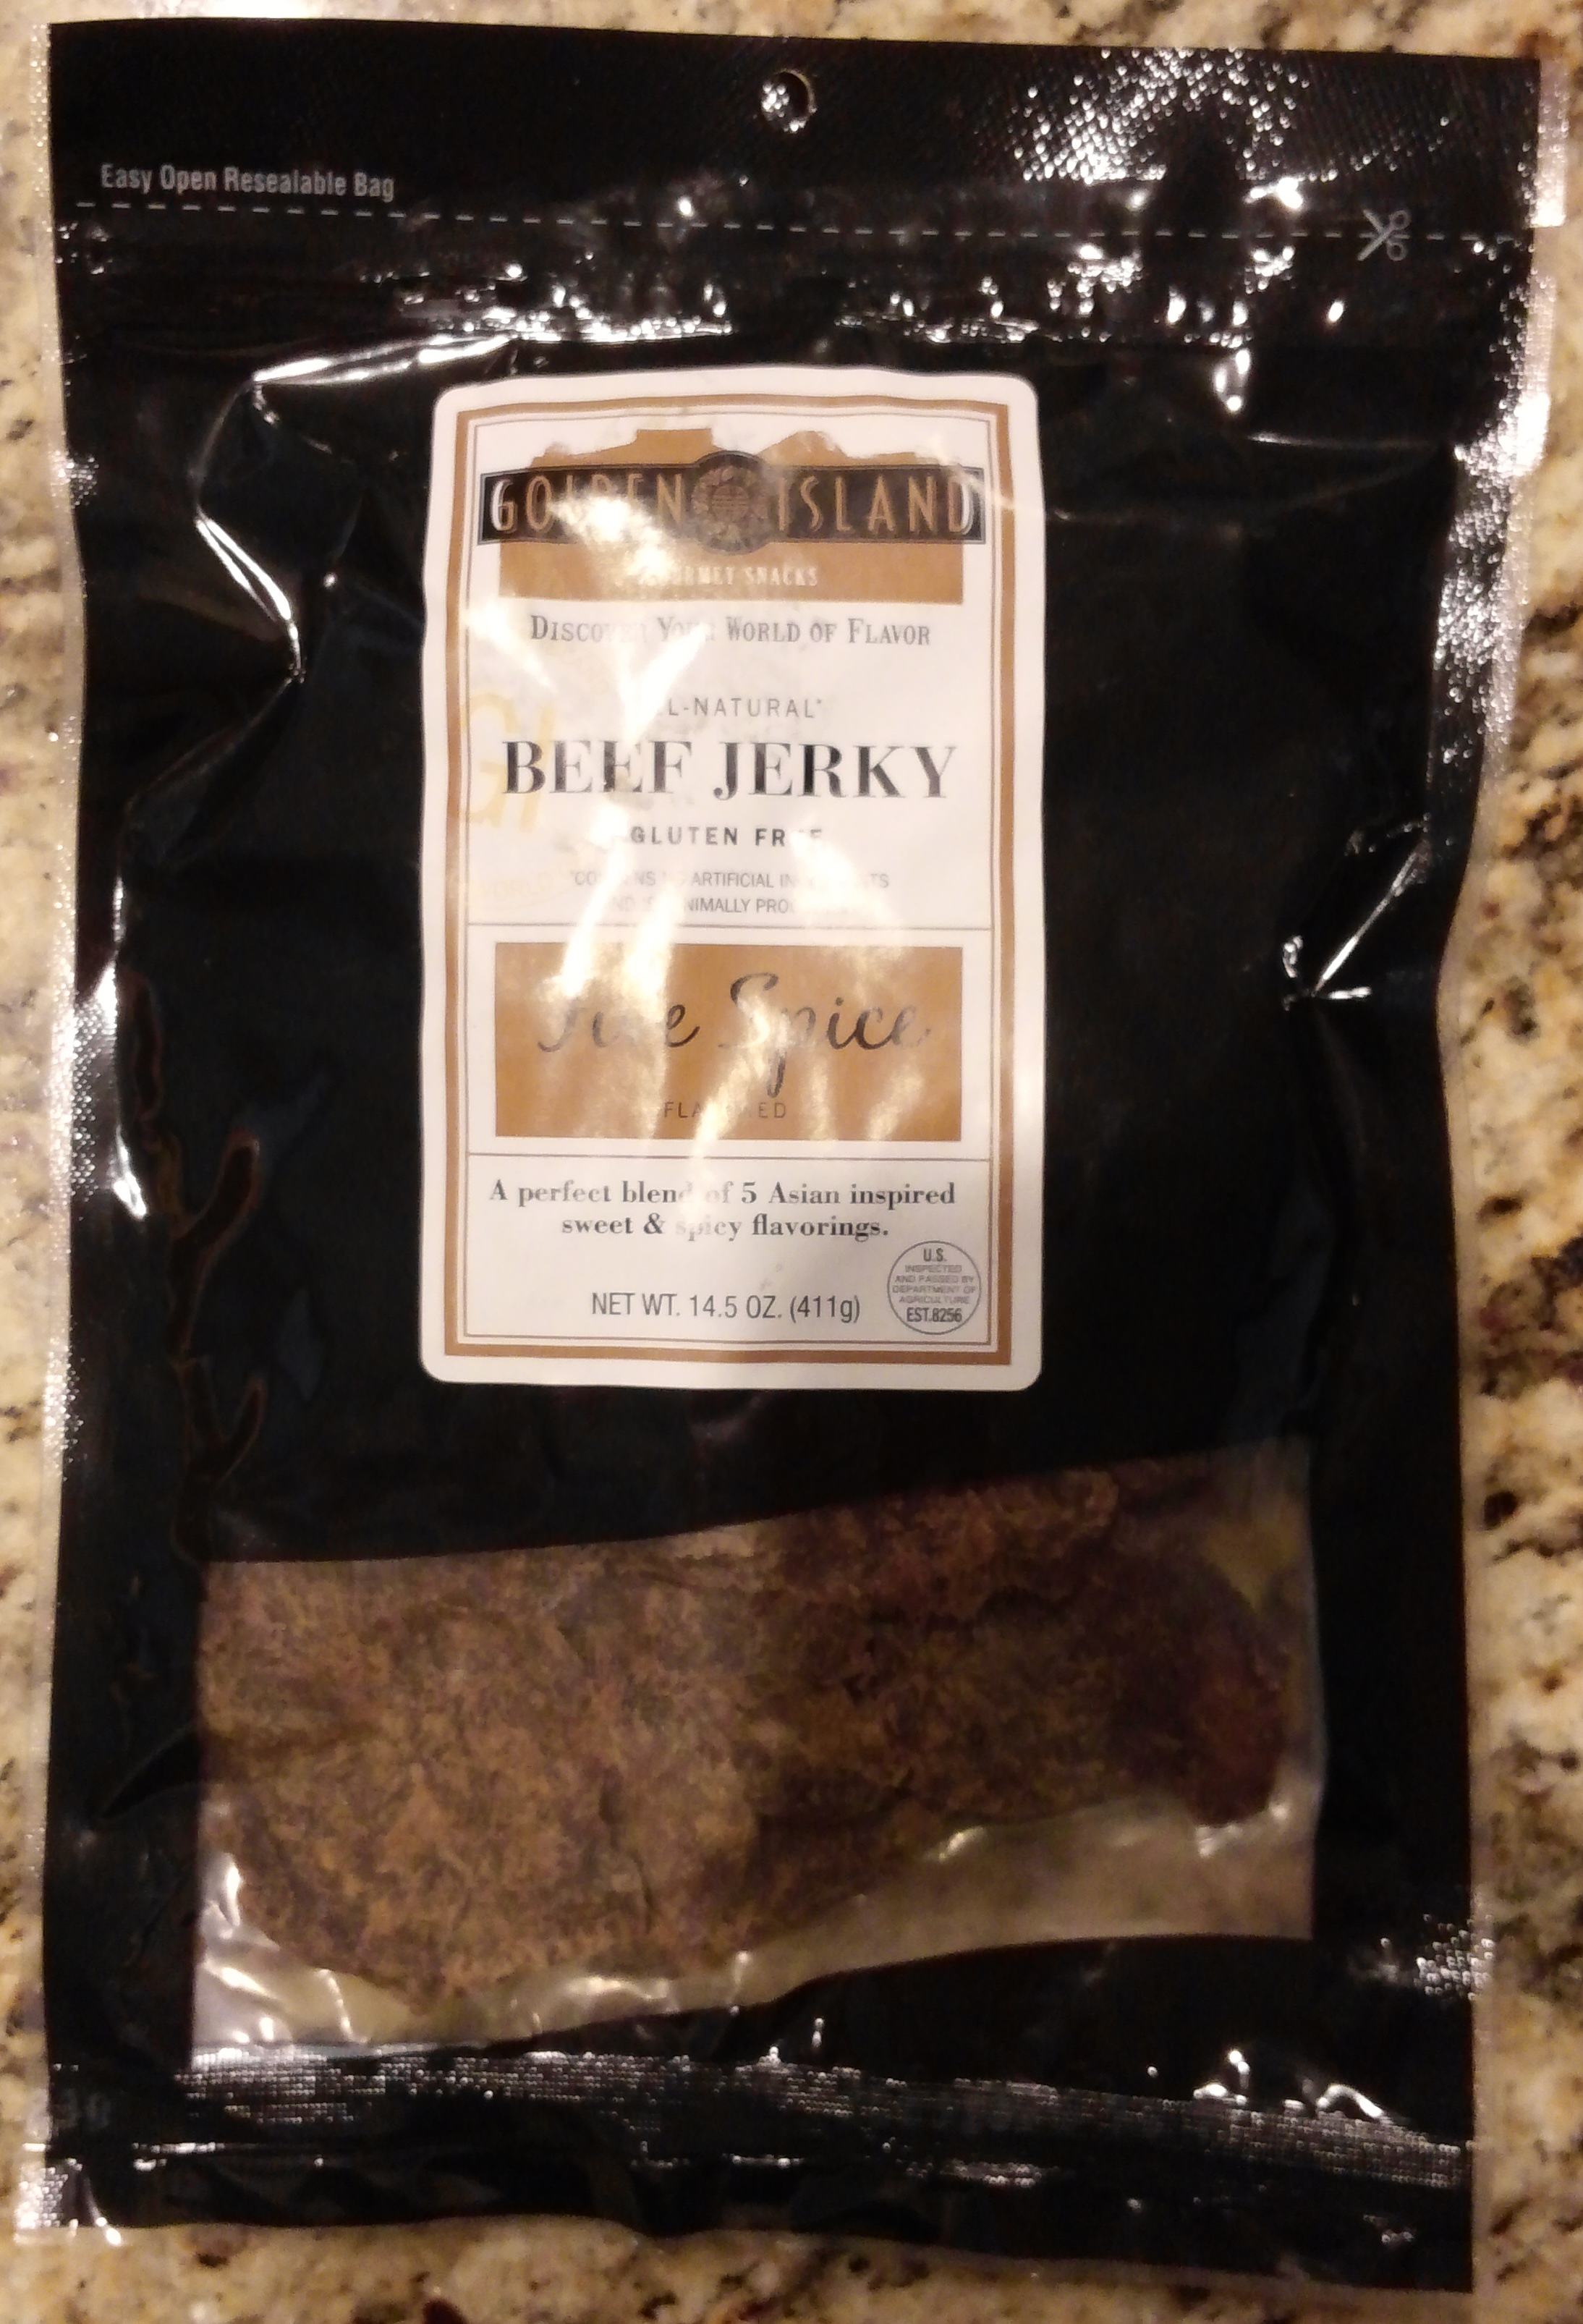 Golden Island All-Natural Five Spice Beef Jerky